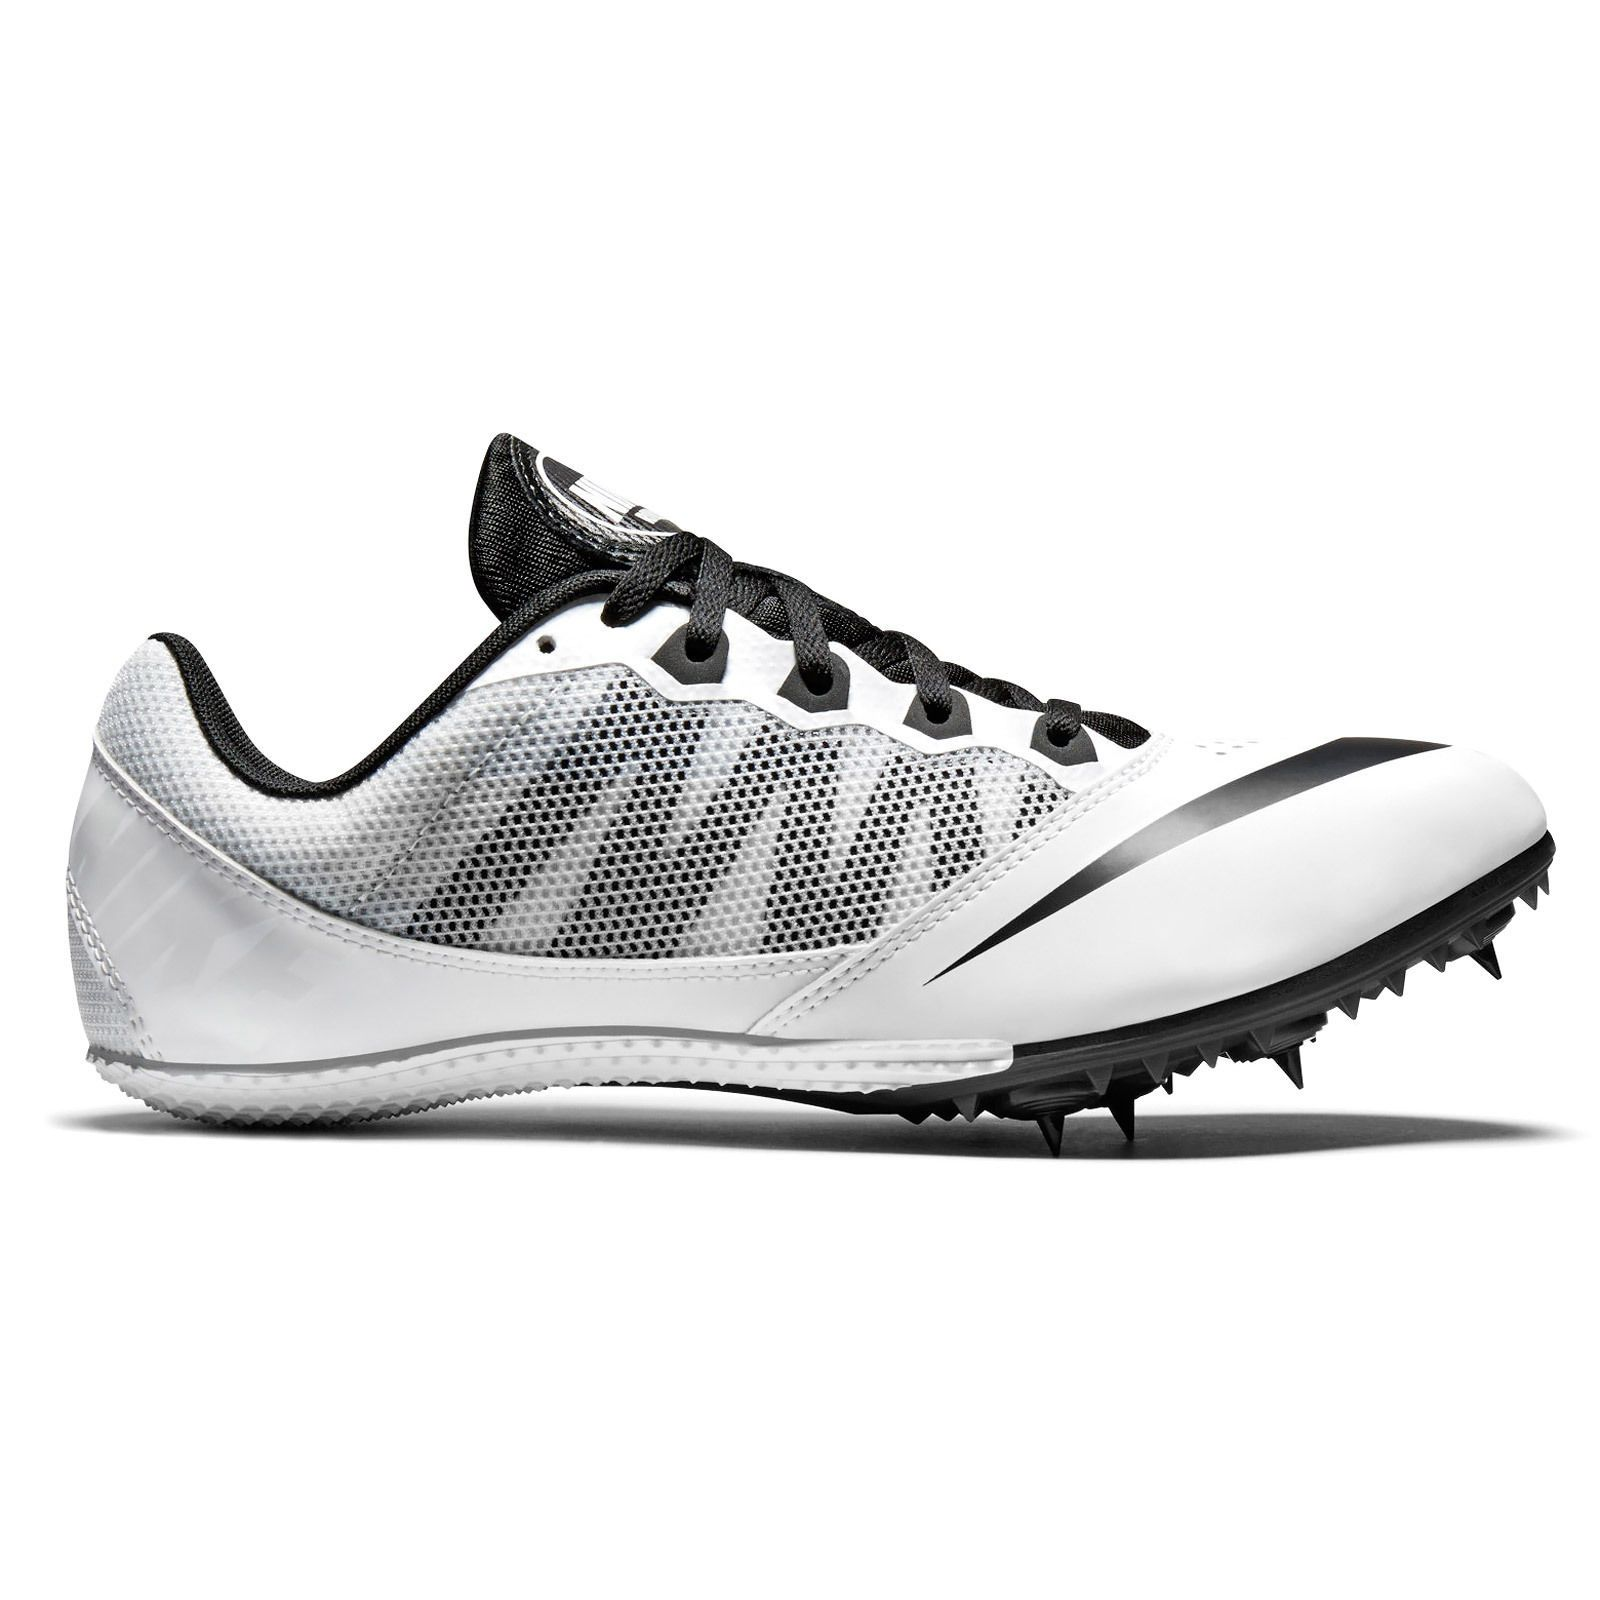 New Nike Zoom Rival S 7 Mens Track & Field Spikes Sprint Running Shoes White